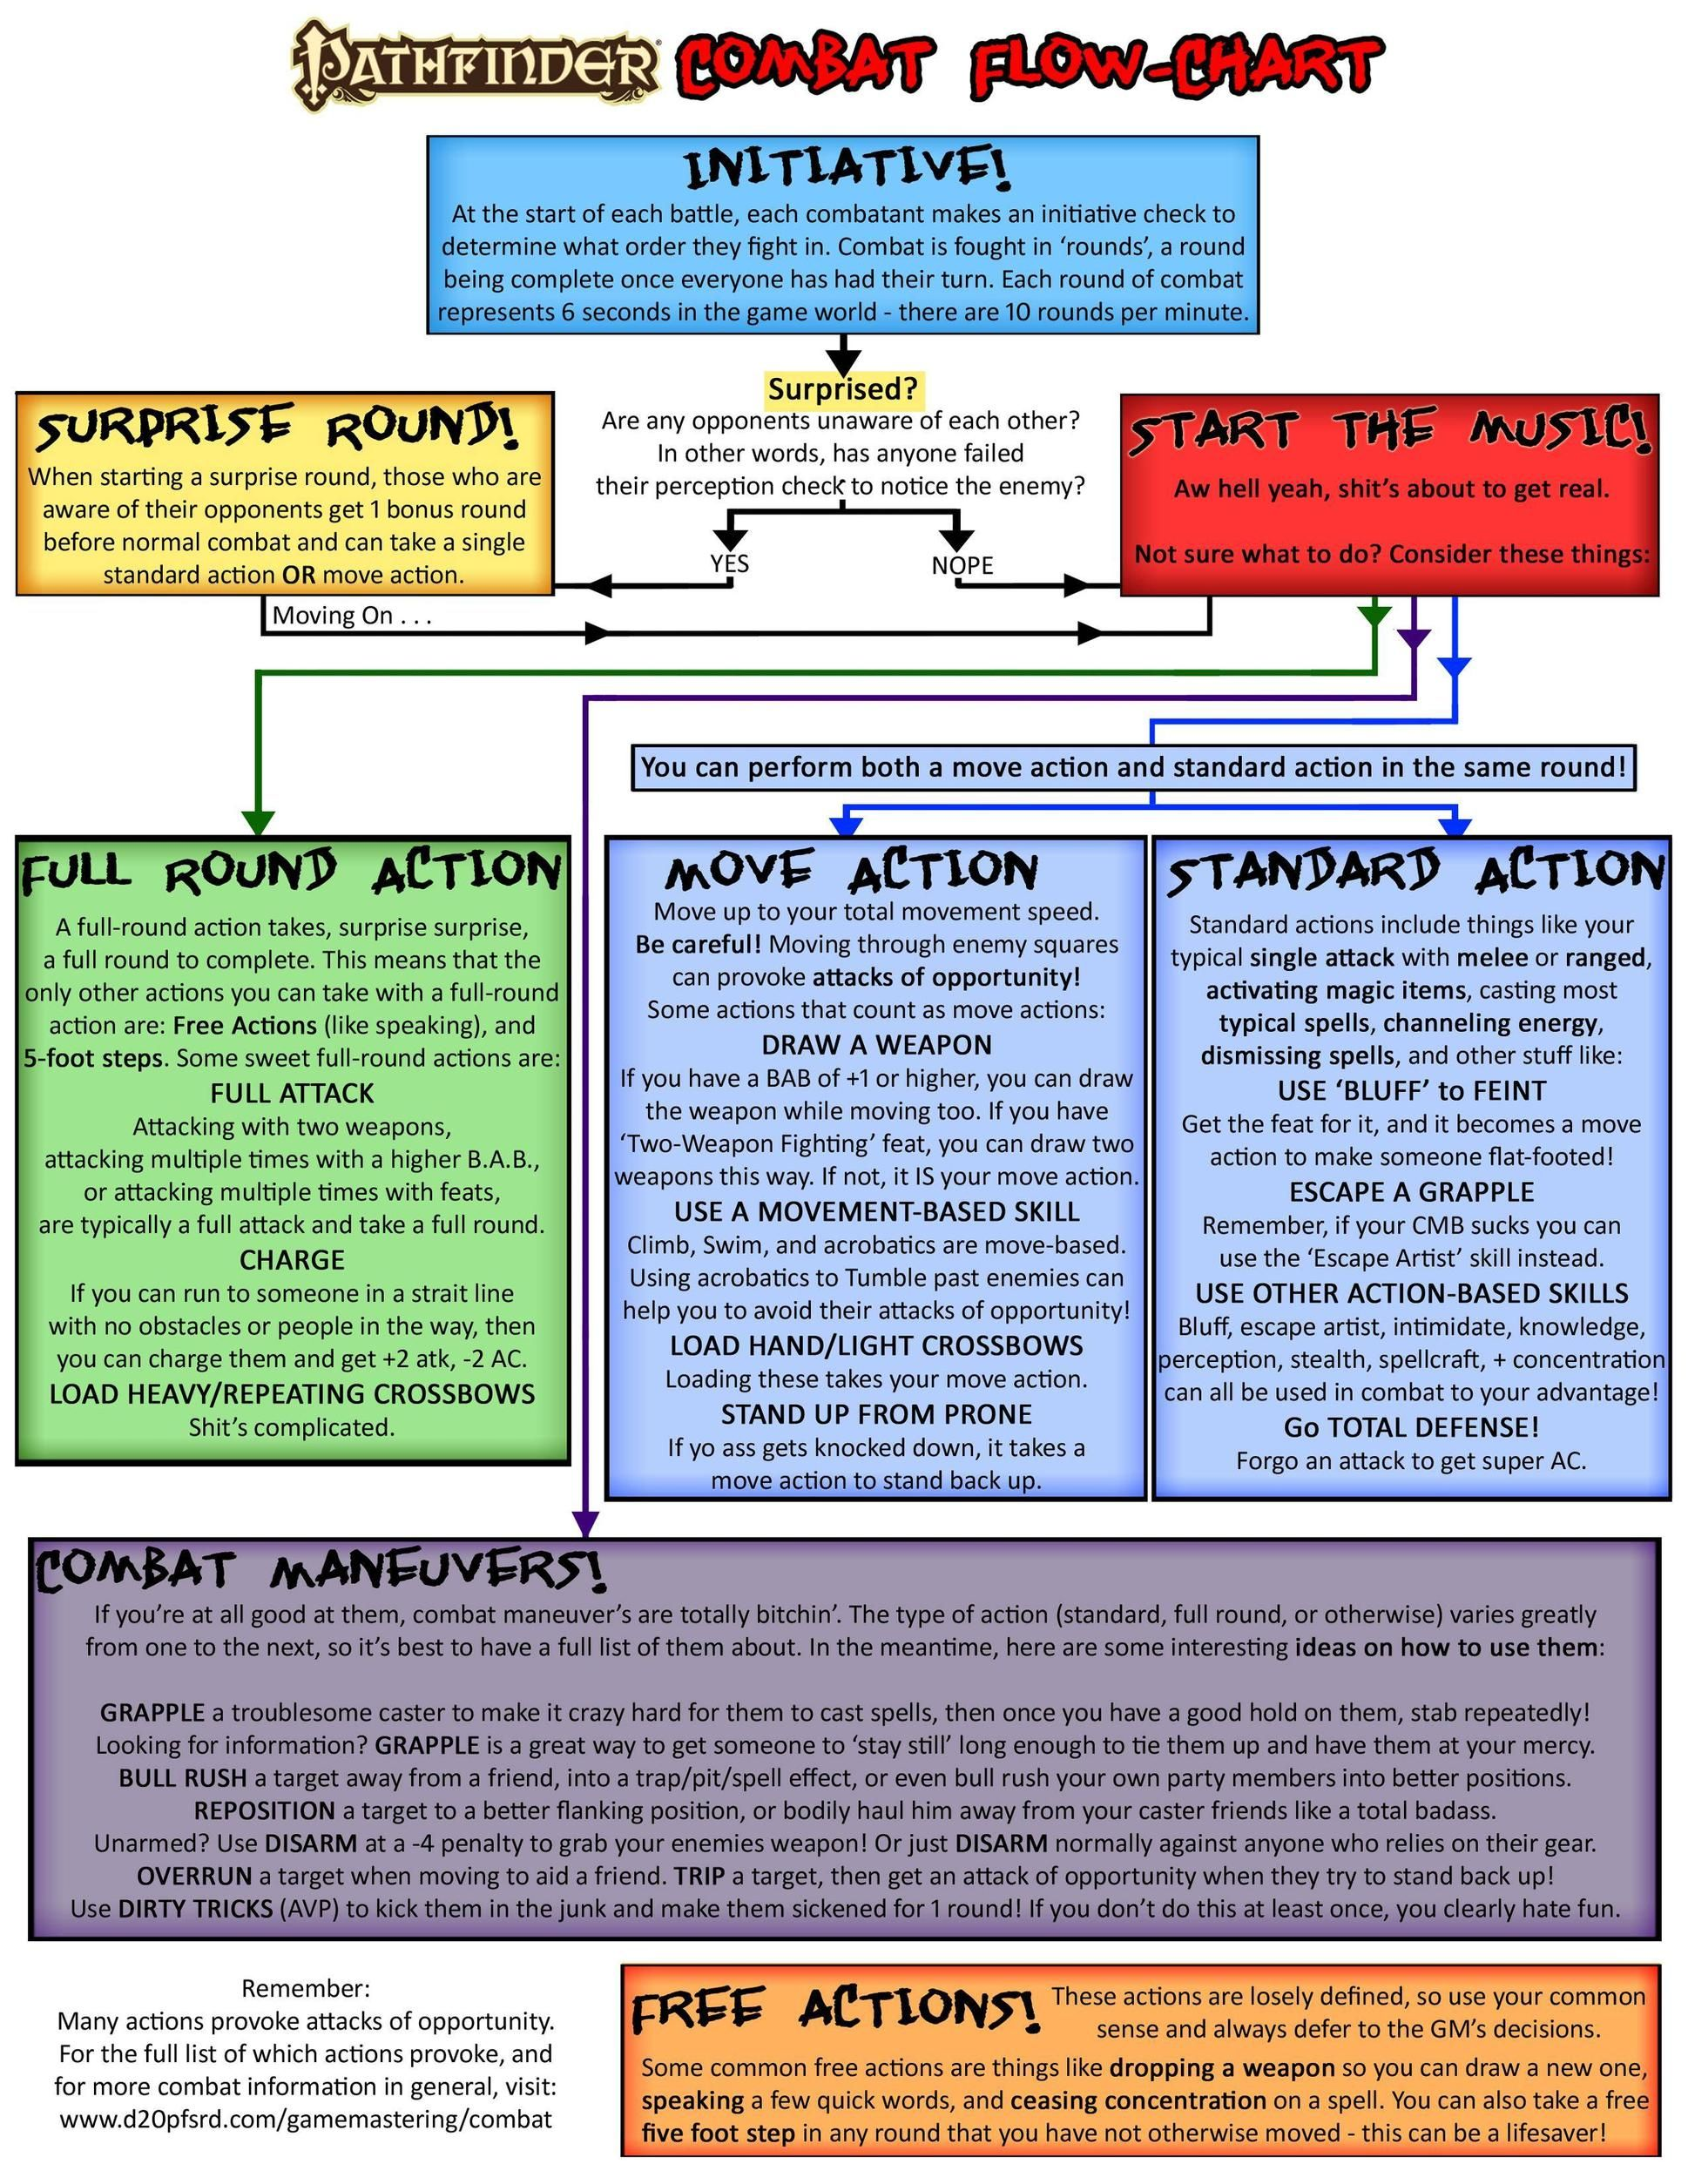 As requested: A Pathfinder Combat Flowchart (Details in